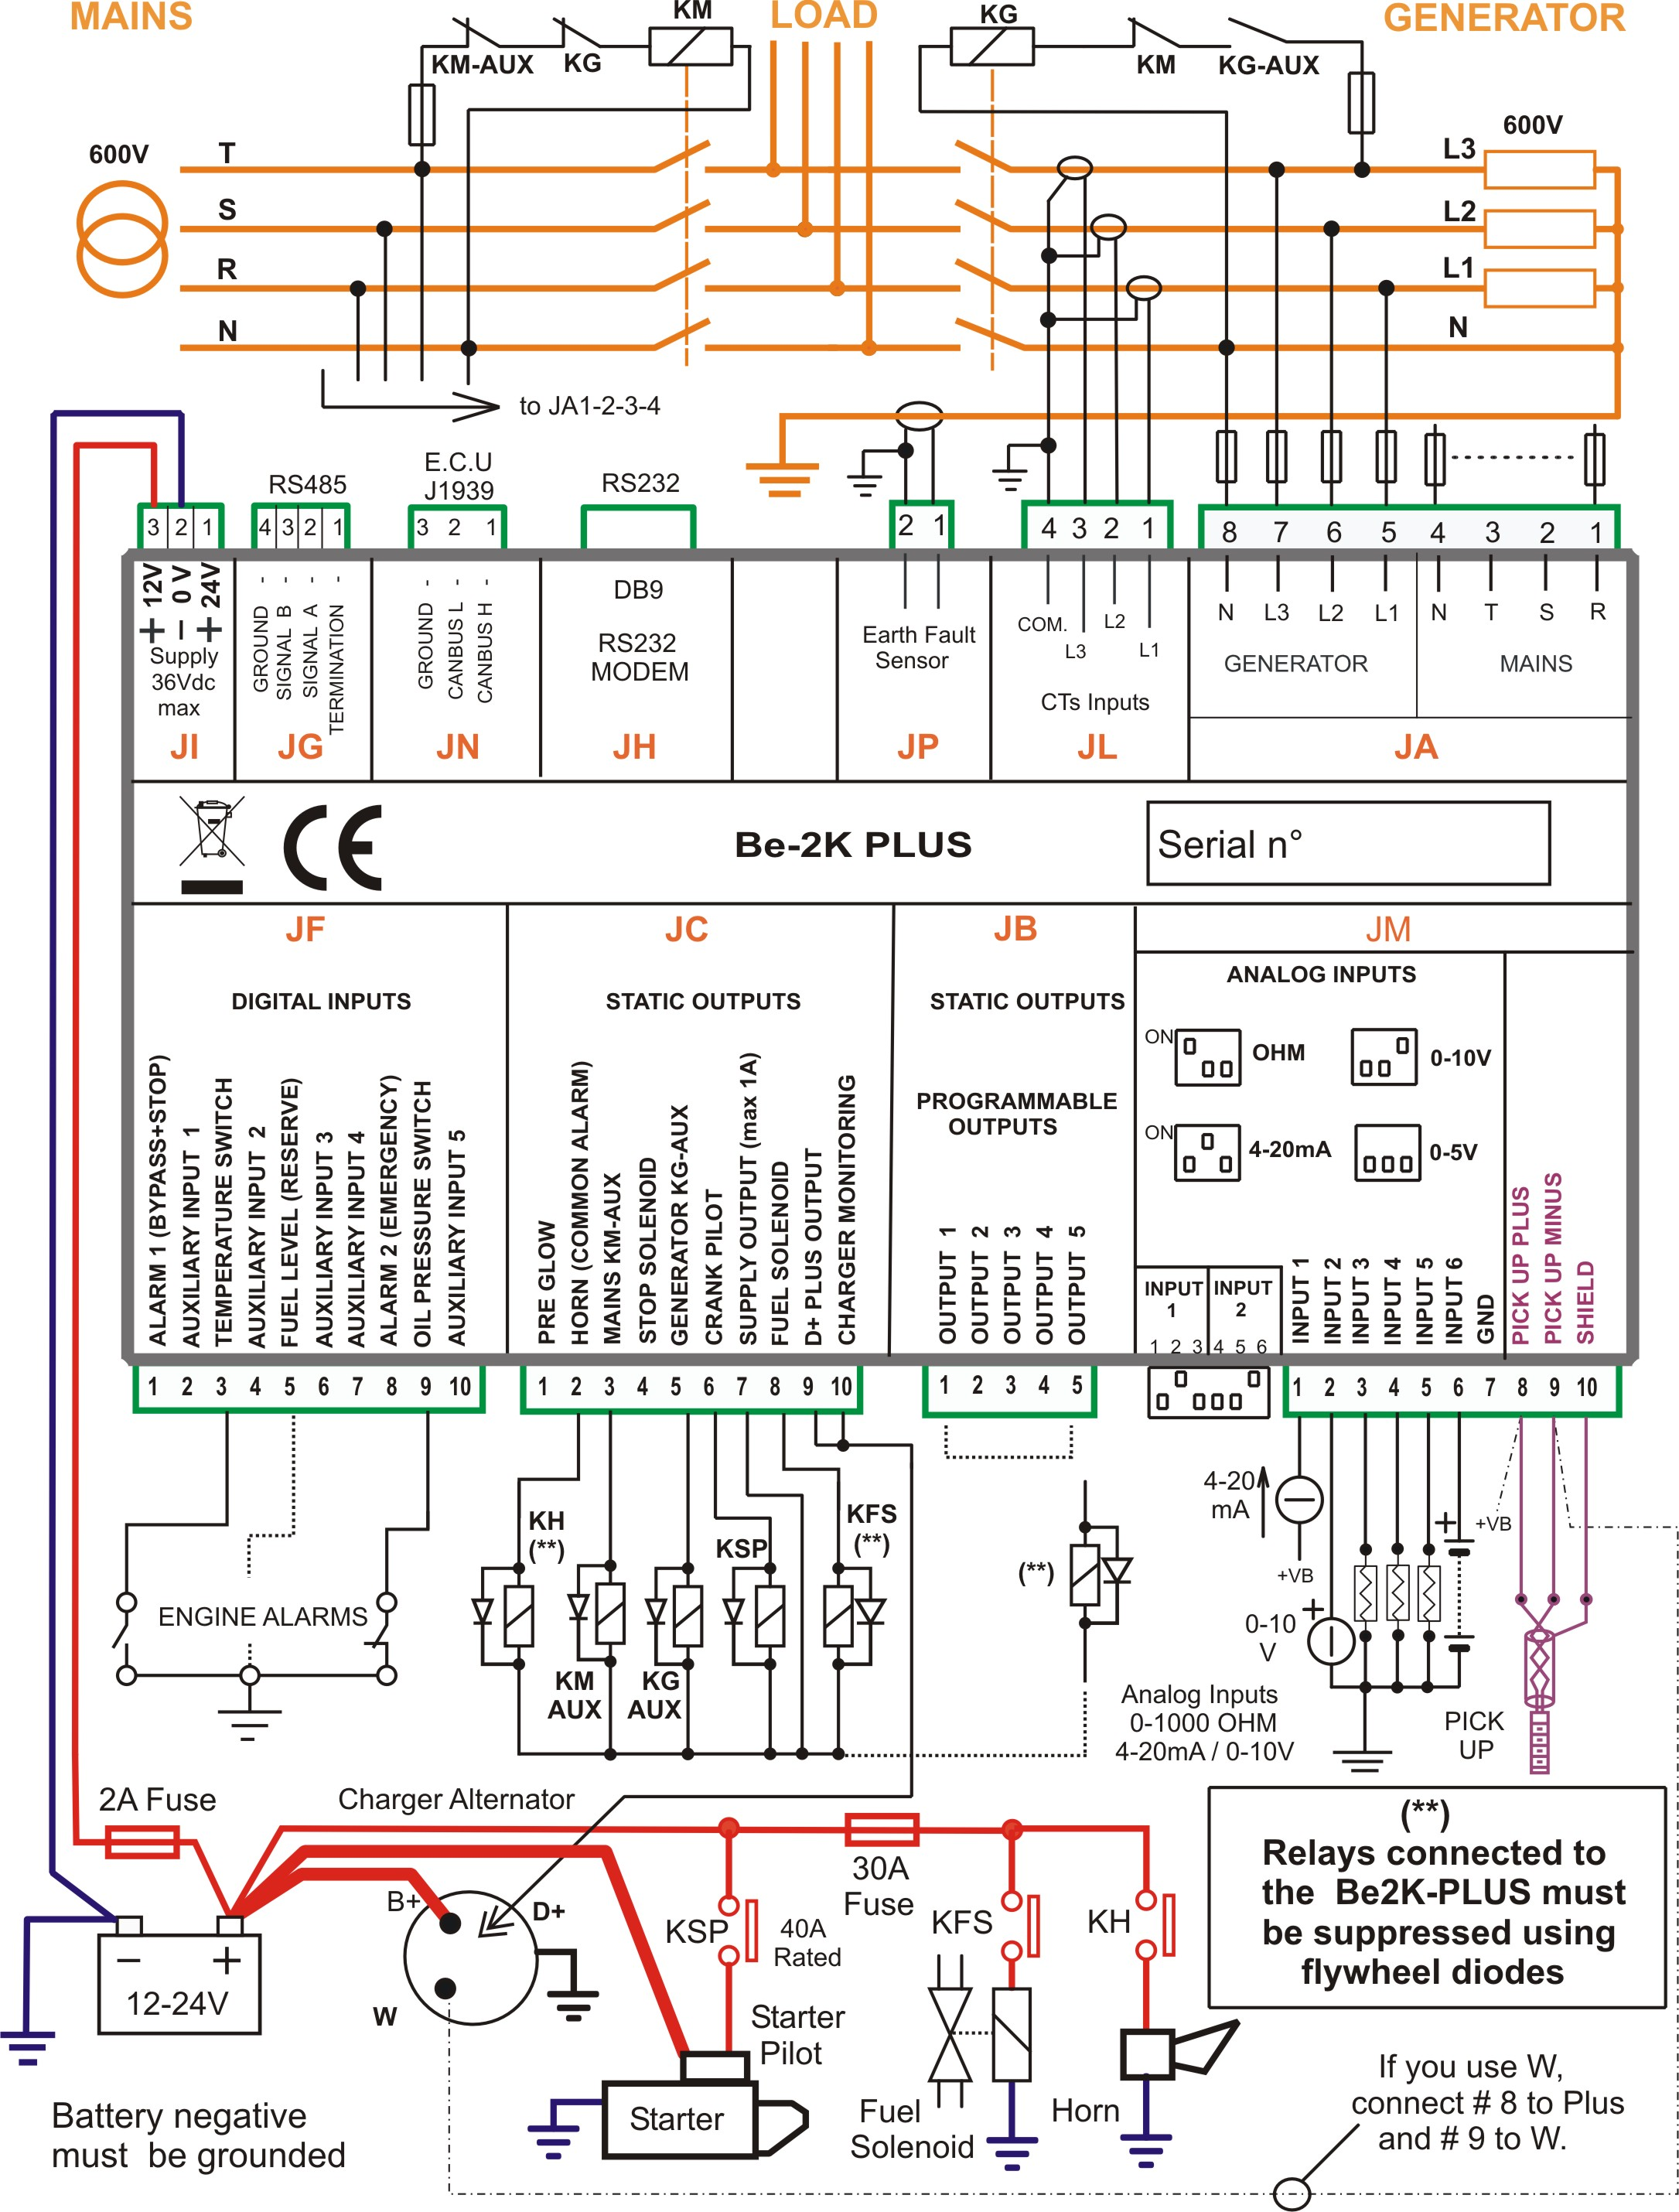 Amf Panel Wiring Diagram - Data Wiring Diagram on solar panels diagram, drilling diagram, troubleshooting diagram, rslogix diagram, plc diagram, electricians diagram, grounding diagram, installation diagram, telecommunications diagram, assembly diagram, panel wiring icon, instrumentation diagram,